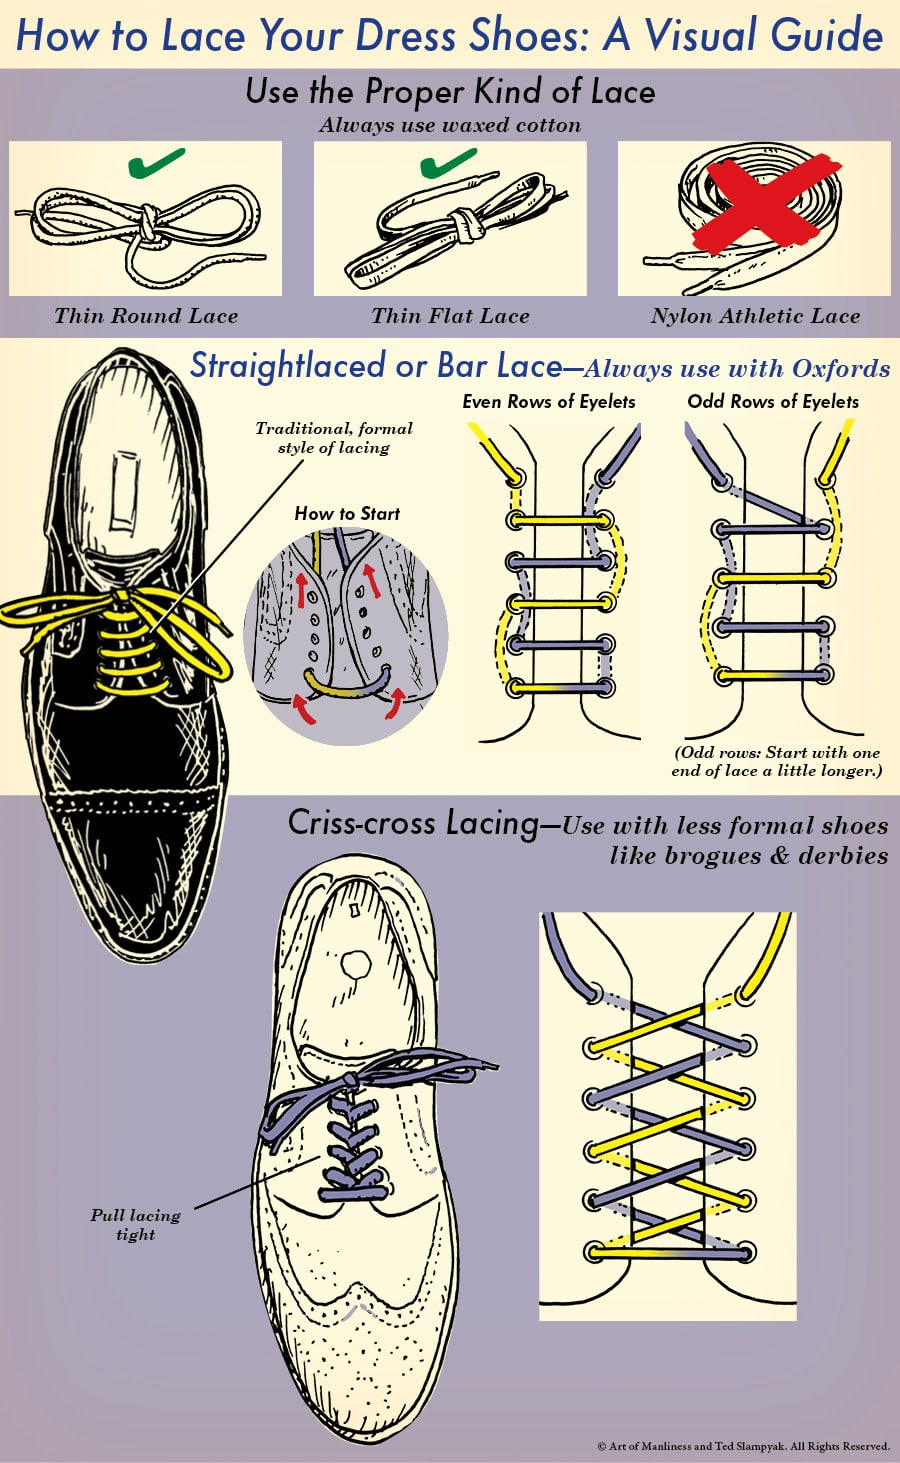 how to lace dress shoes illustration